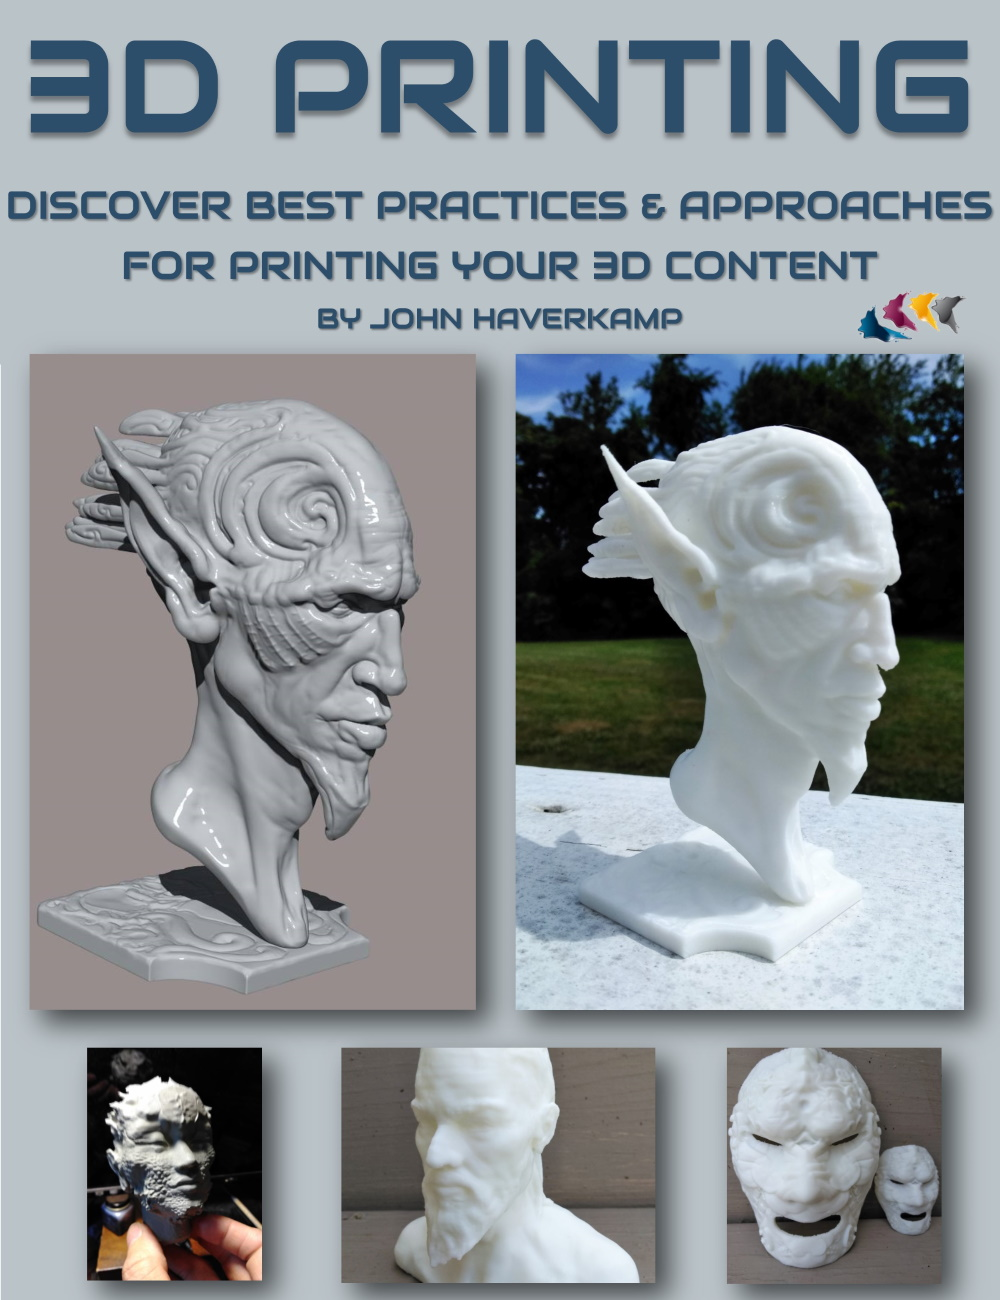 3D Printing : Best Practices and Approaches by: Digital Art Livemagbhitu, 3D Models by Daz 3D